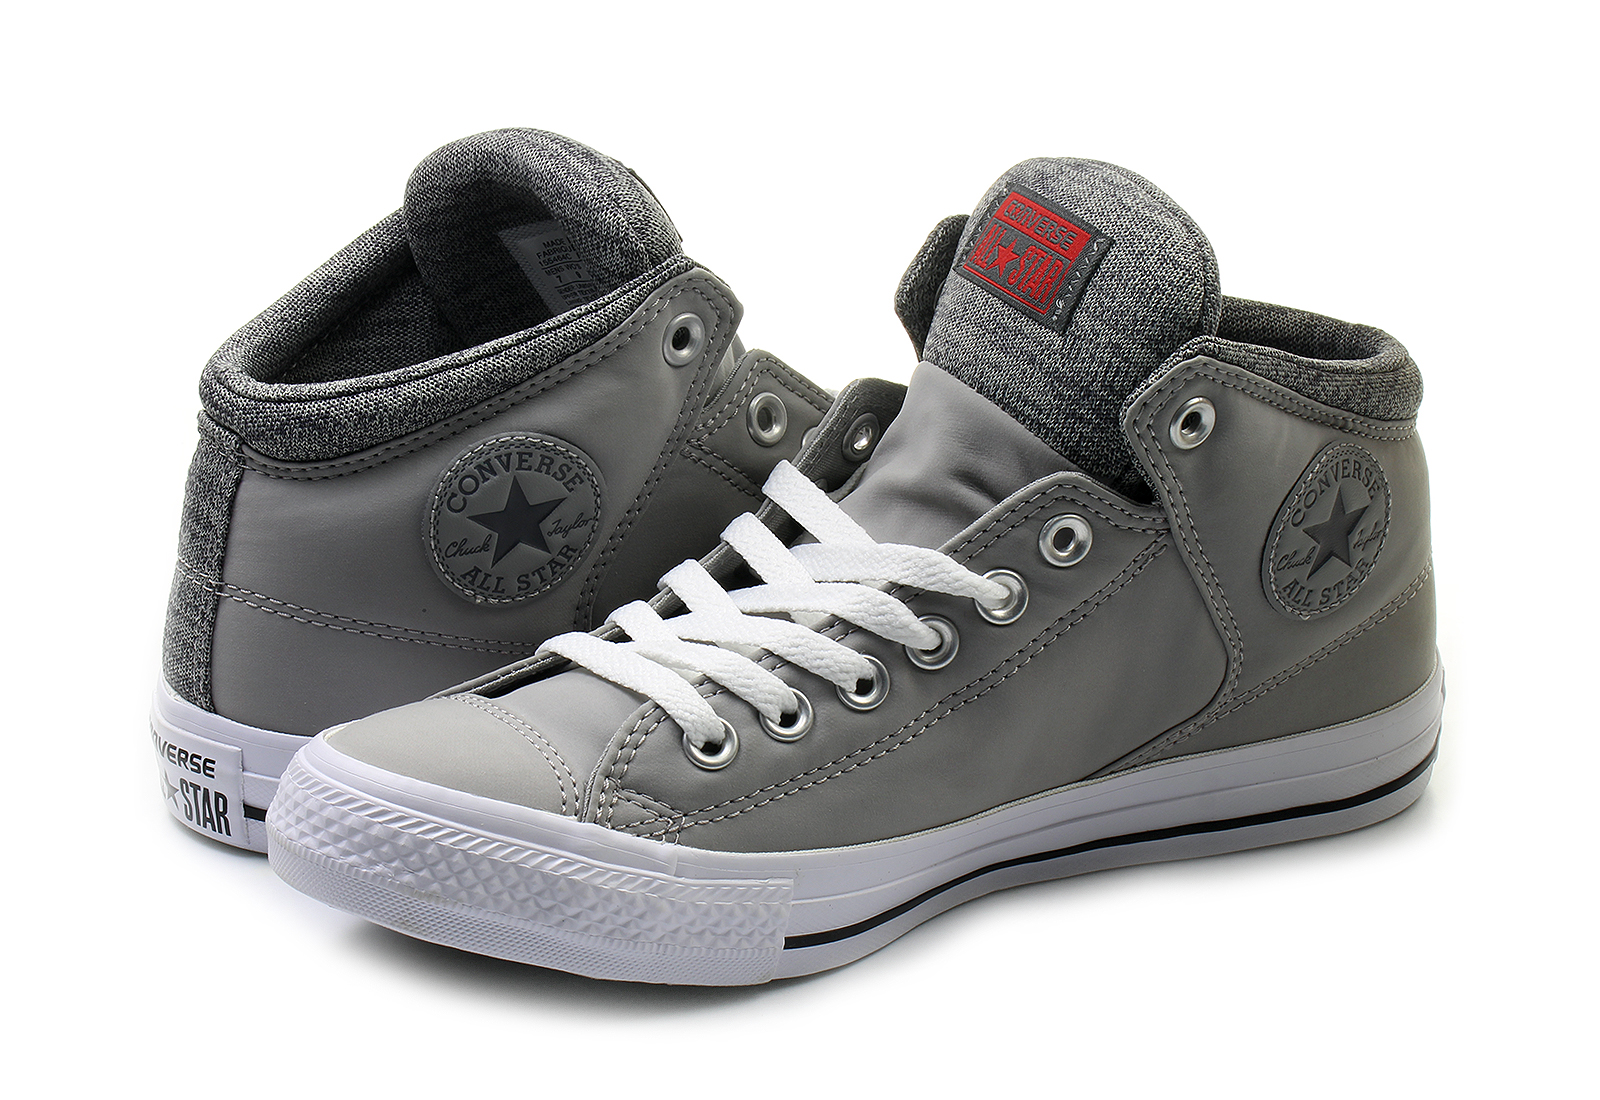 Chuck Taylor All Star High Street Mid